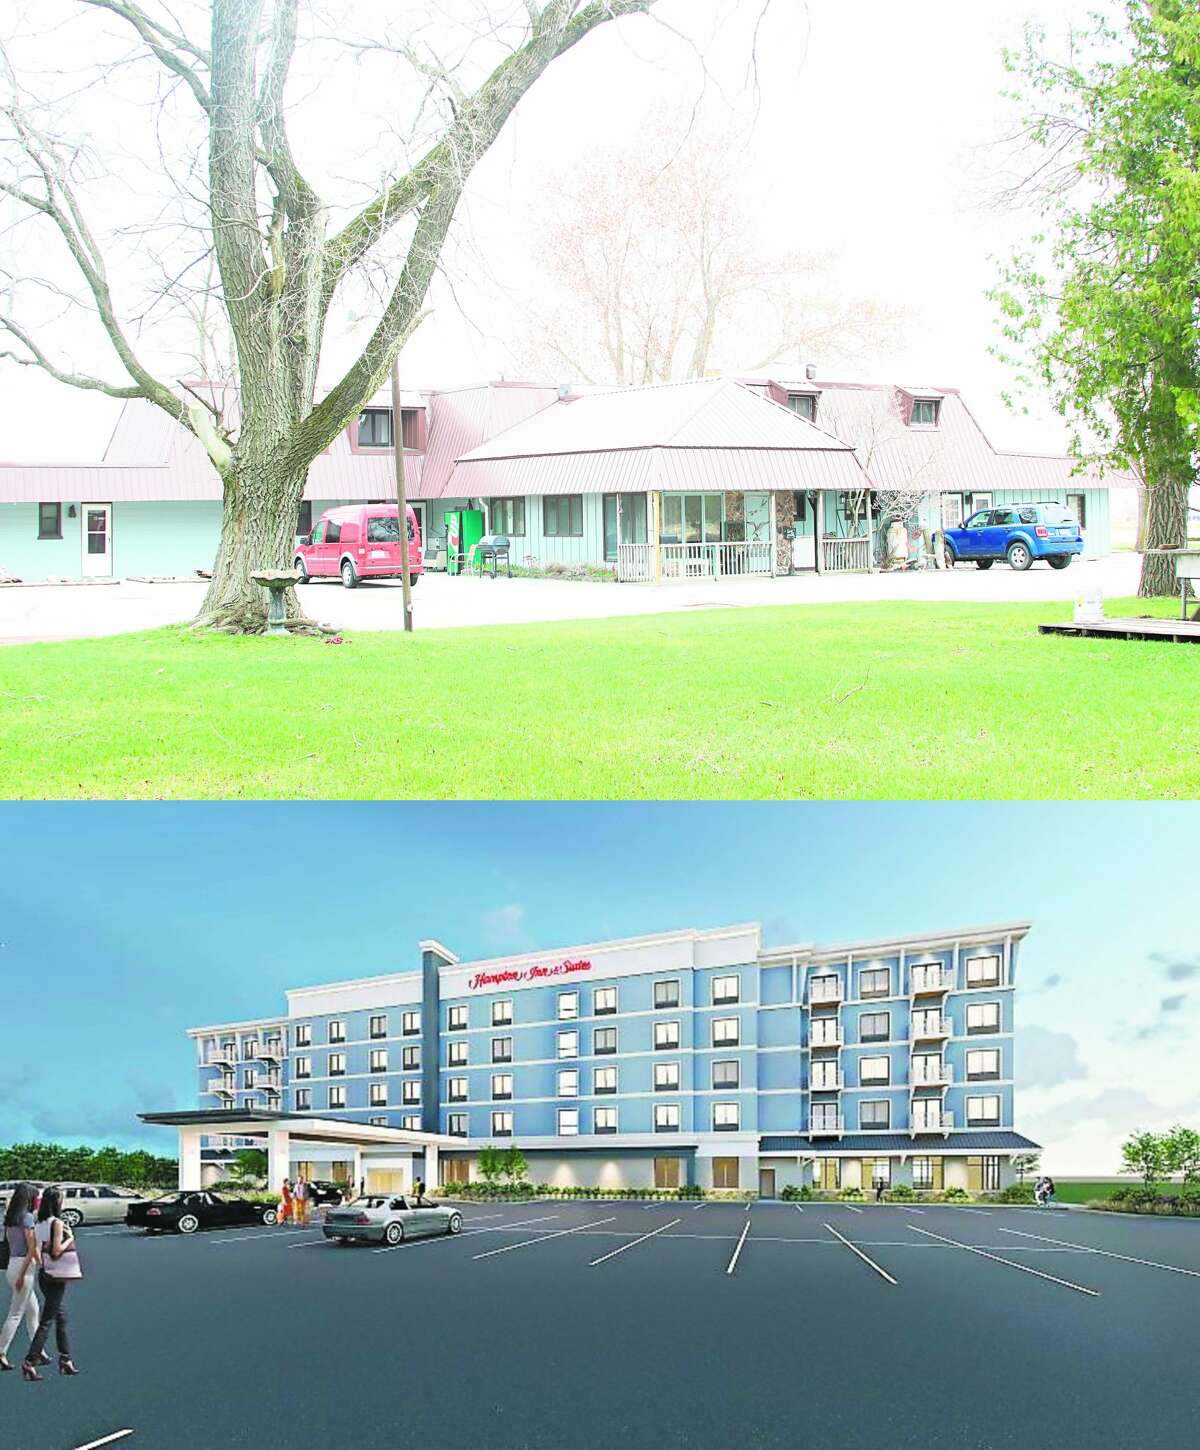 The Manistee Planning Commission will hold a public hearing on Thursday for the proposed hotel on Lakeshore Drive. Pictured on top is a portion of the current Lakeshore Motel, below is a rendering of the proposed Hampton Inn.